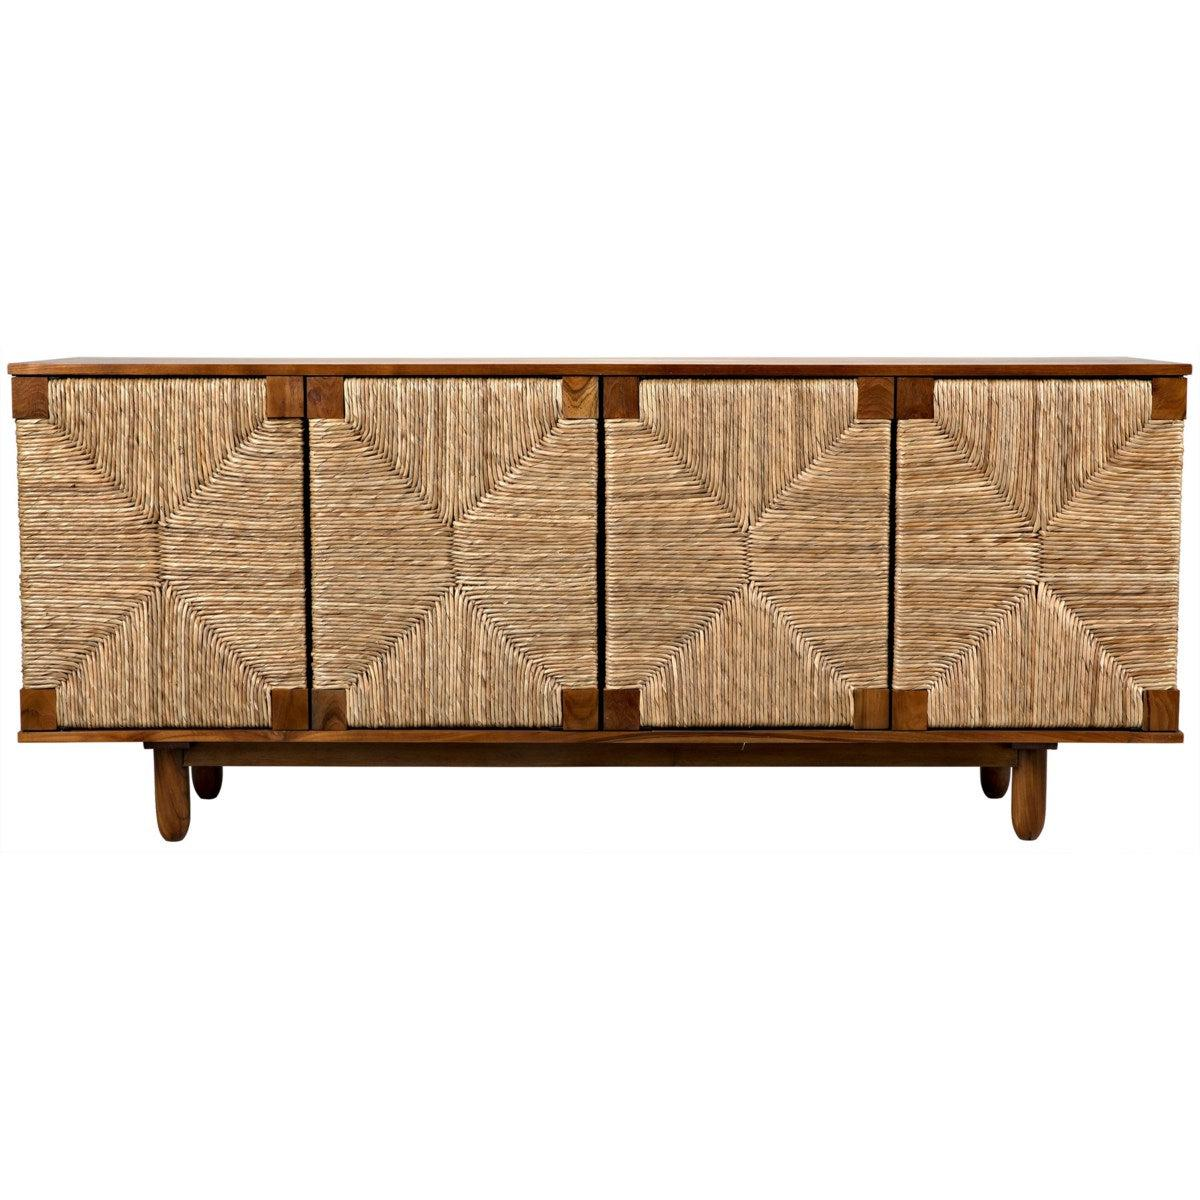 Noir Brook 4 Door Sideboard, Teak